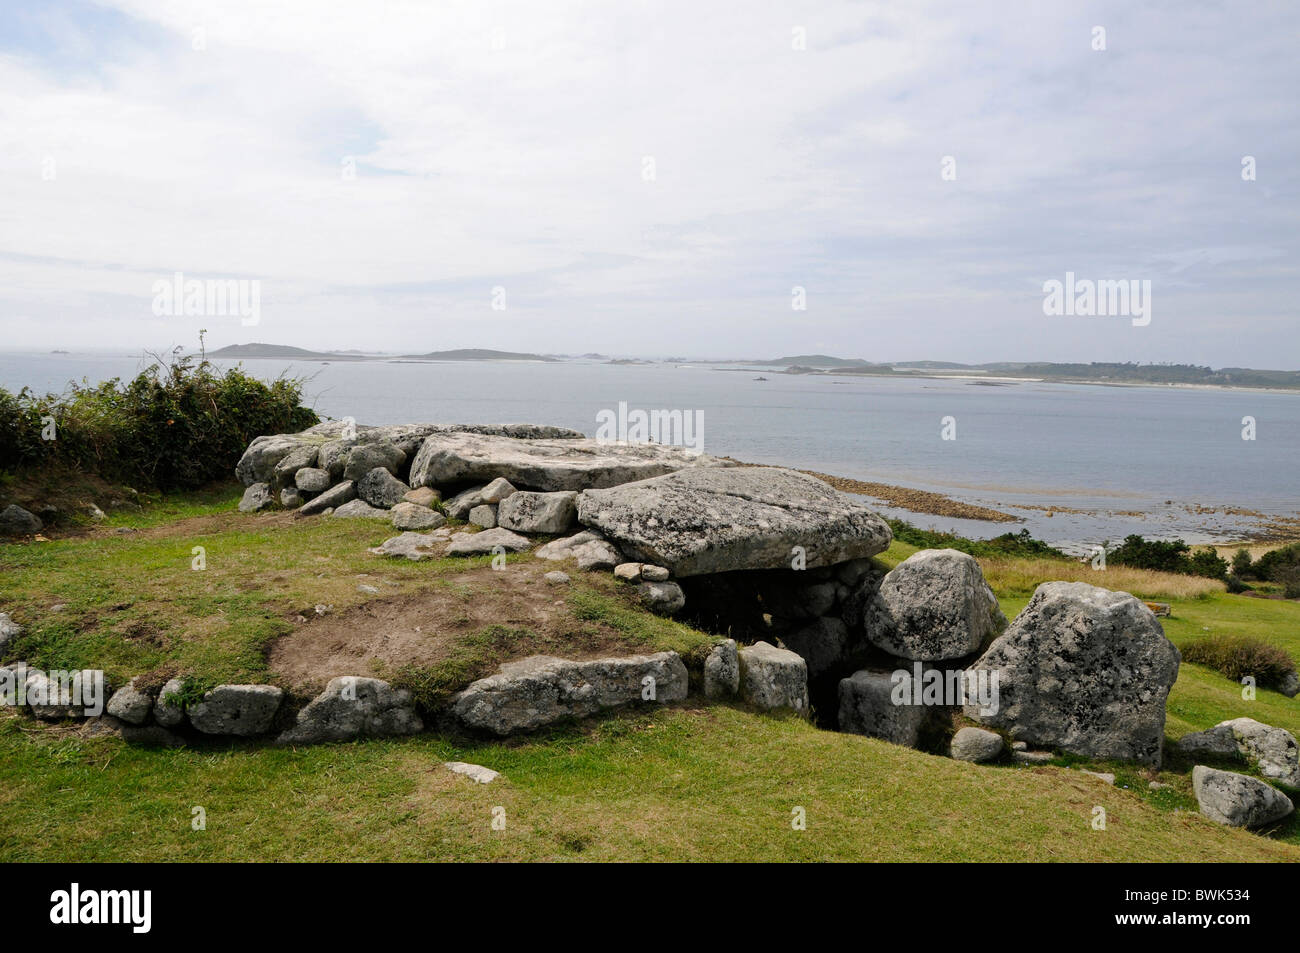 Barnt's Carn Burial Chamber and ancient Viking village on St.Mary's, Isles of Scilly, Britain - Stock Image